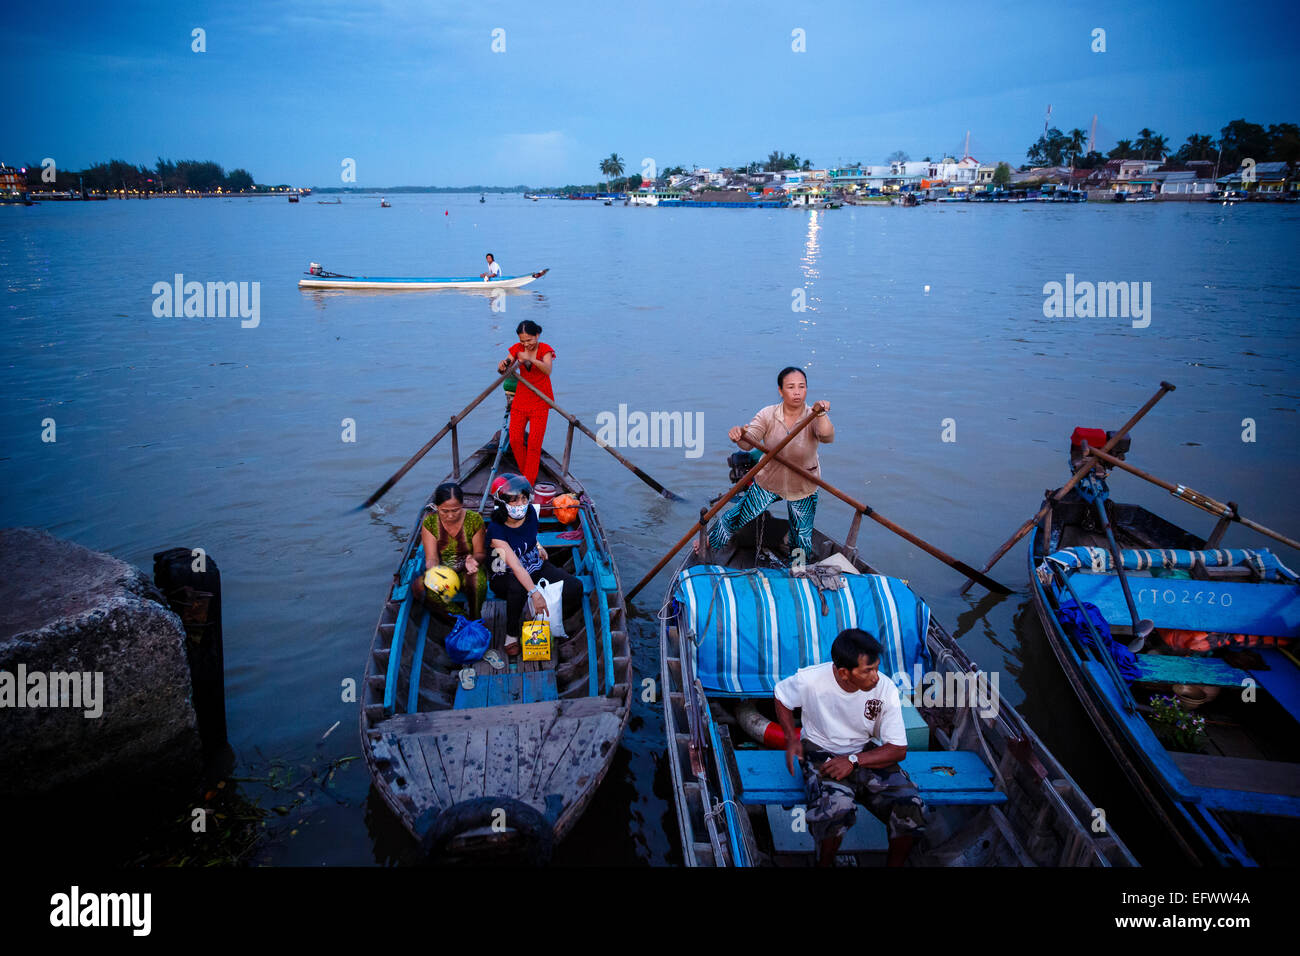 Boats at the Mekong Delta, Can Tho, Vietnam - Stock Image